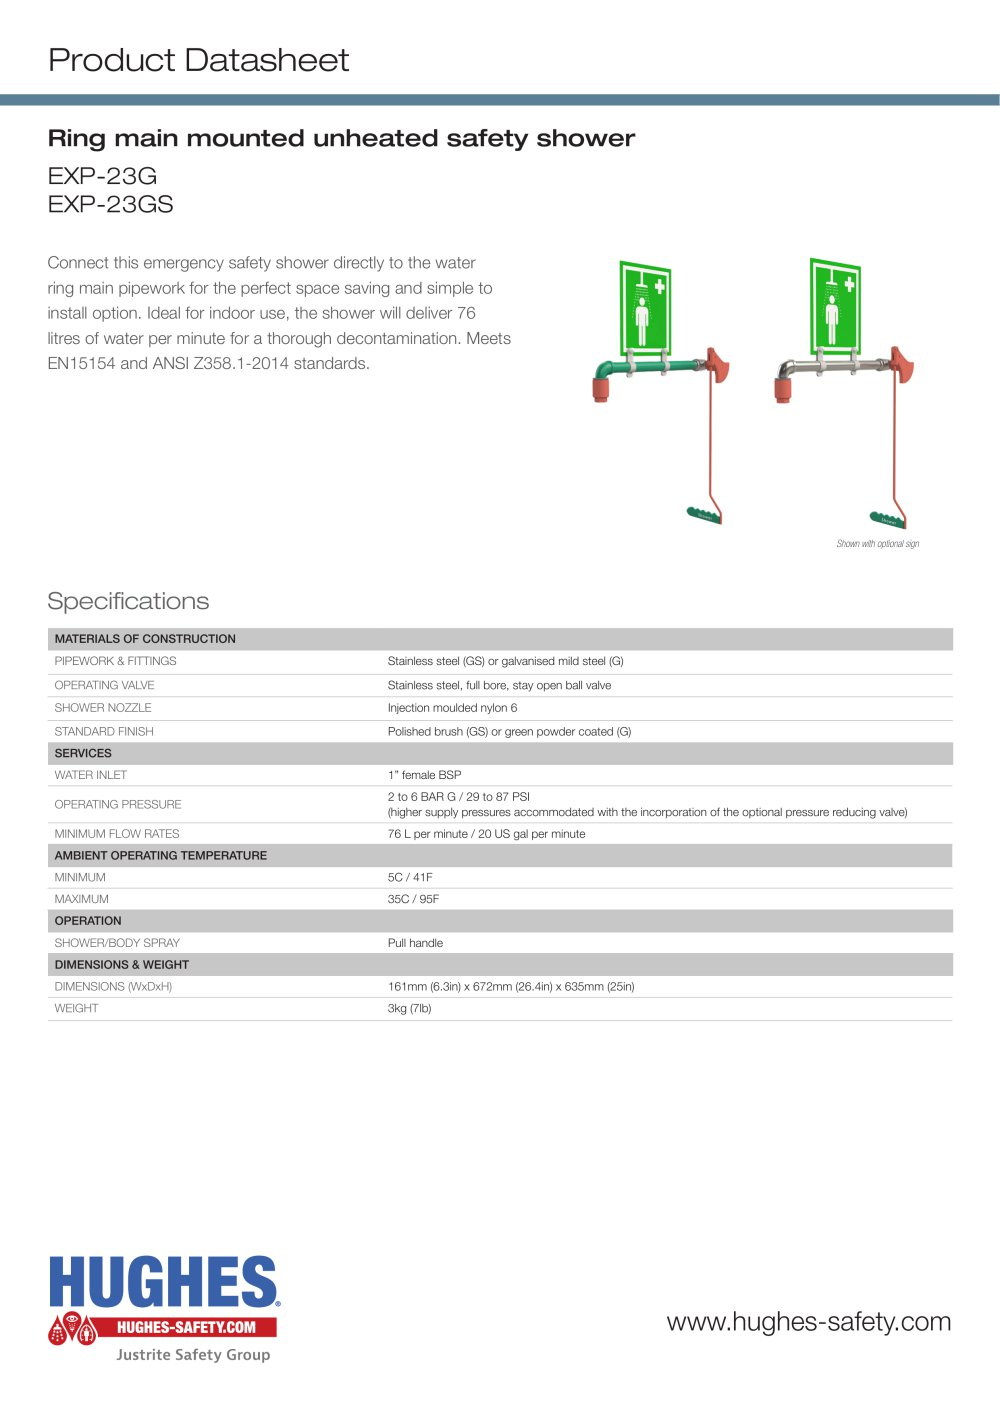 EXP-23G Product Datasheet - Hughes Safety Showers - PDF Catalogue ...